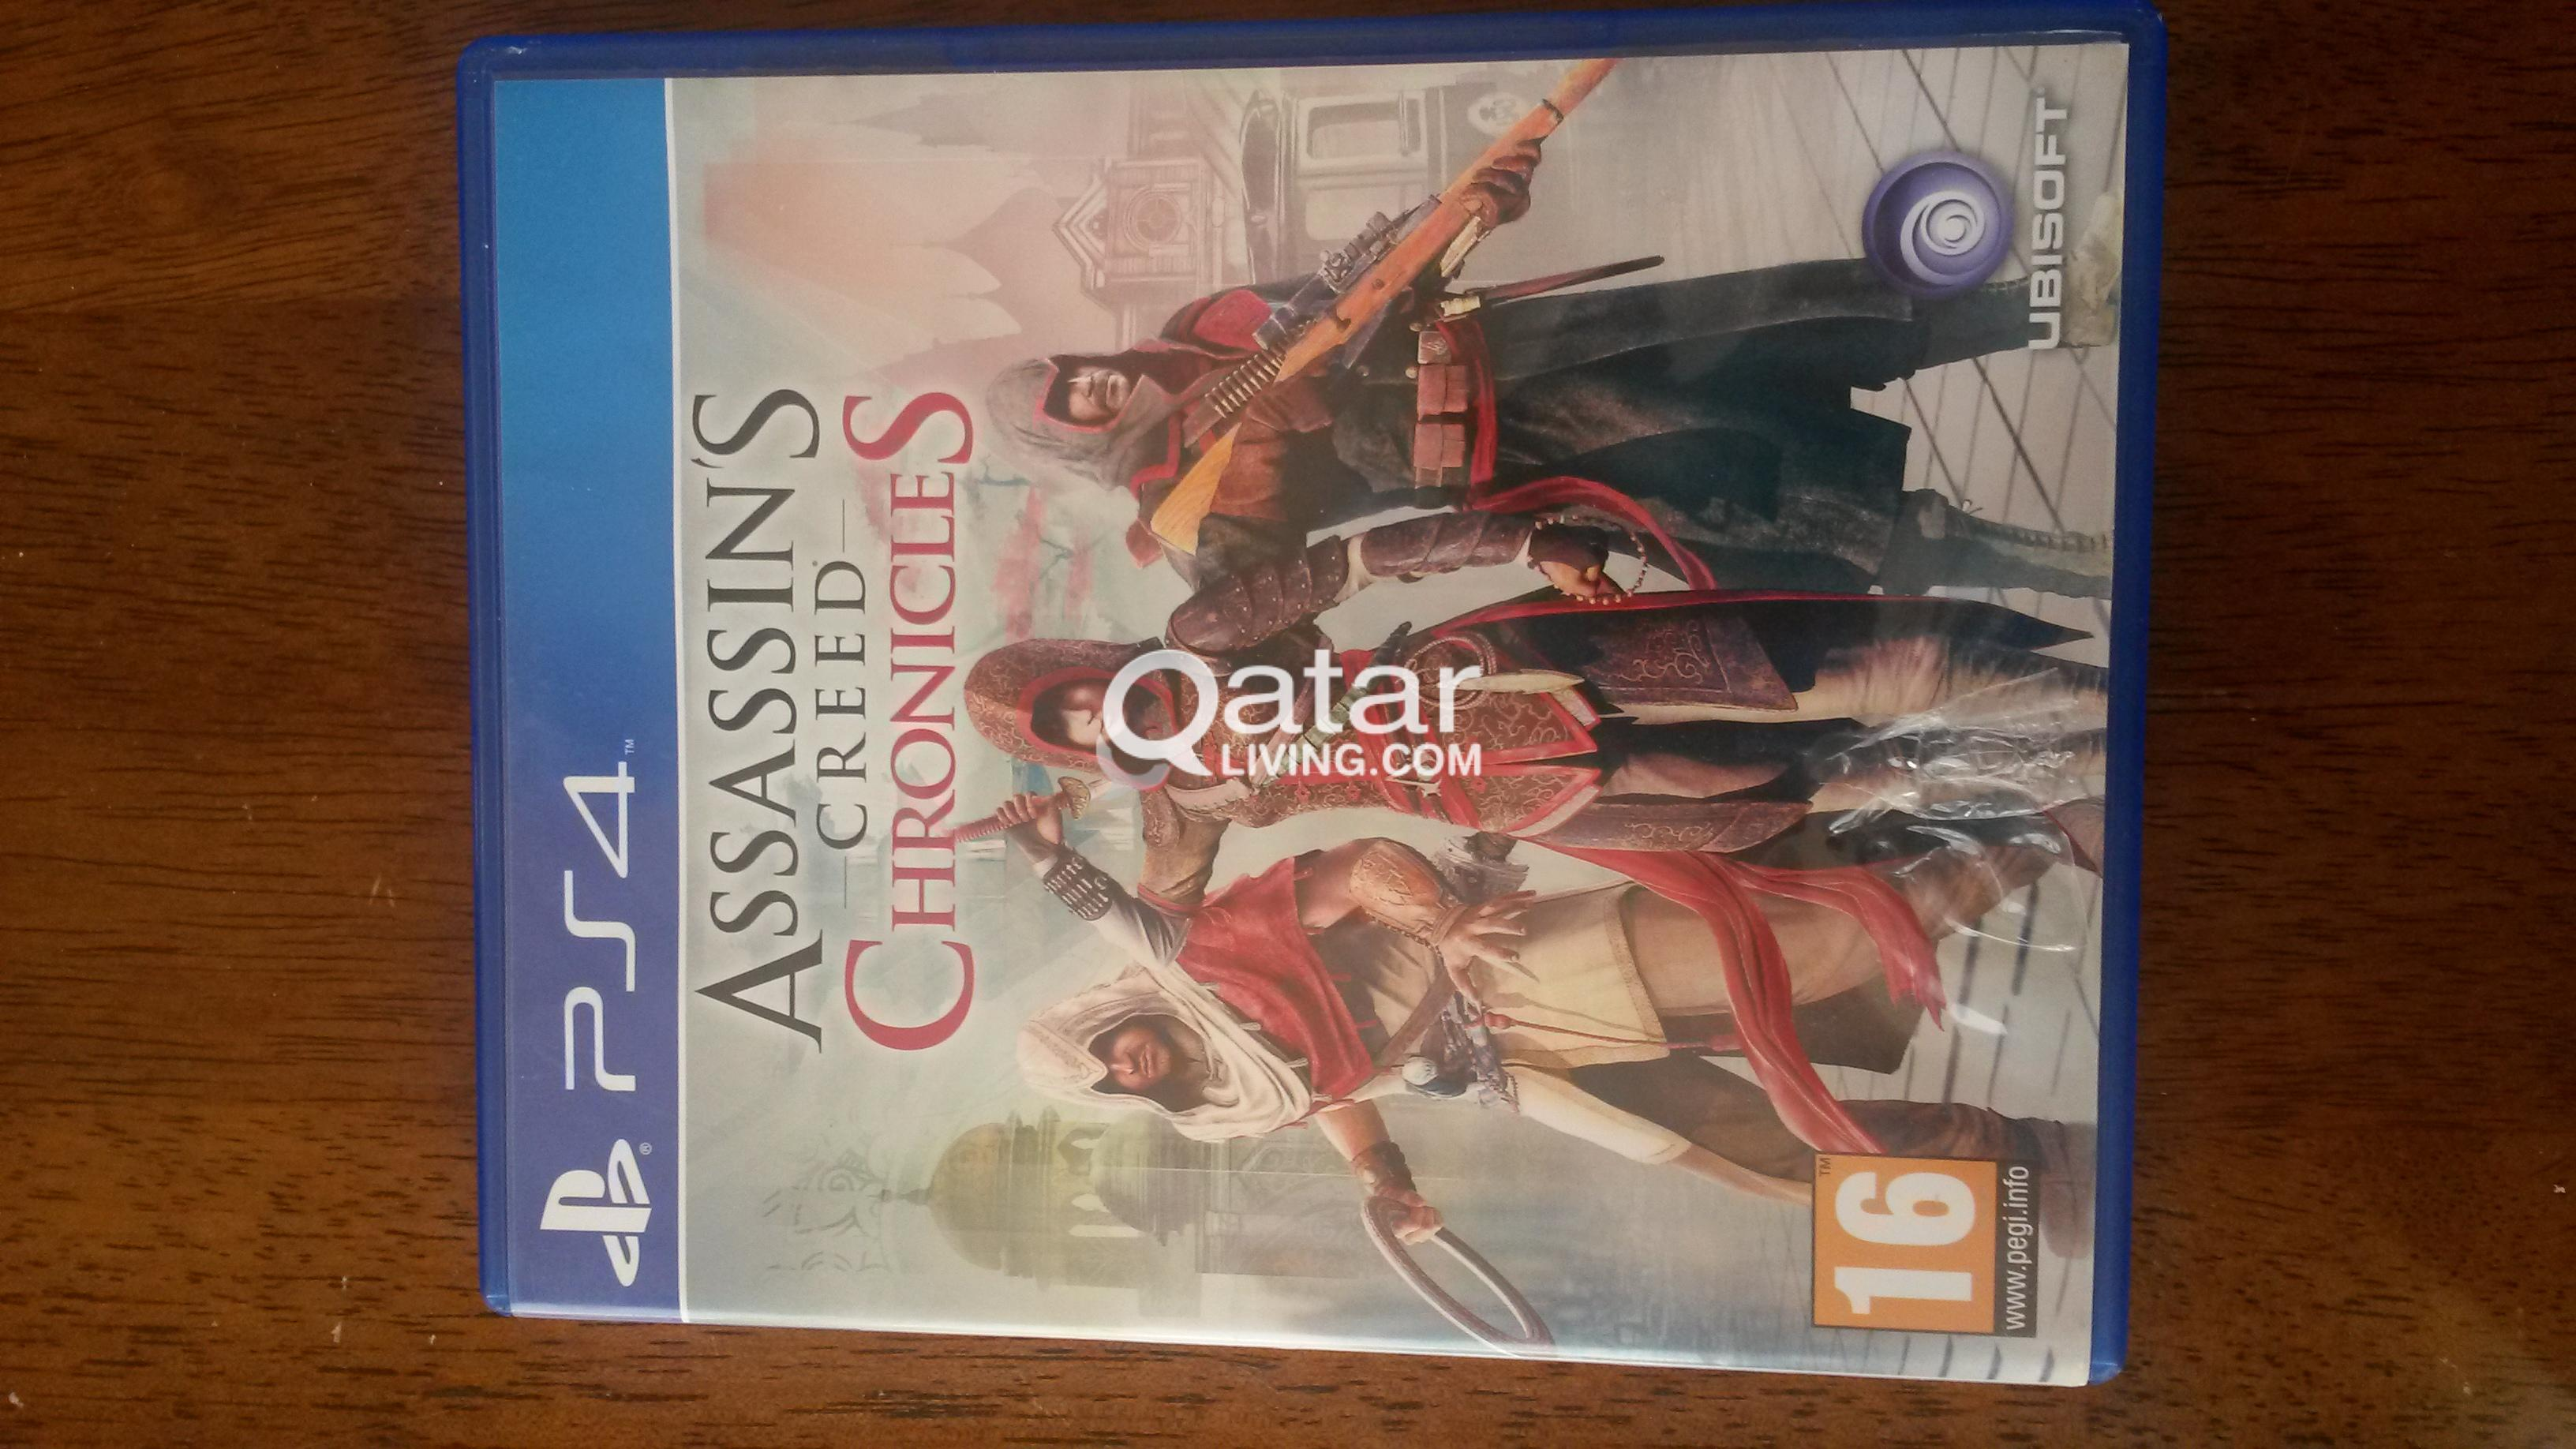 Assassins Creed Chronicles Trilogy Pack Ps4 Qatar Living